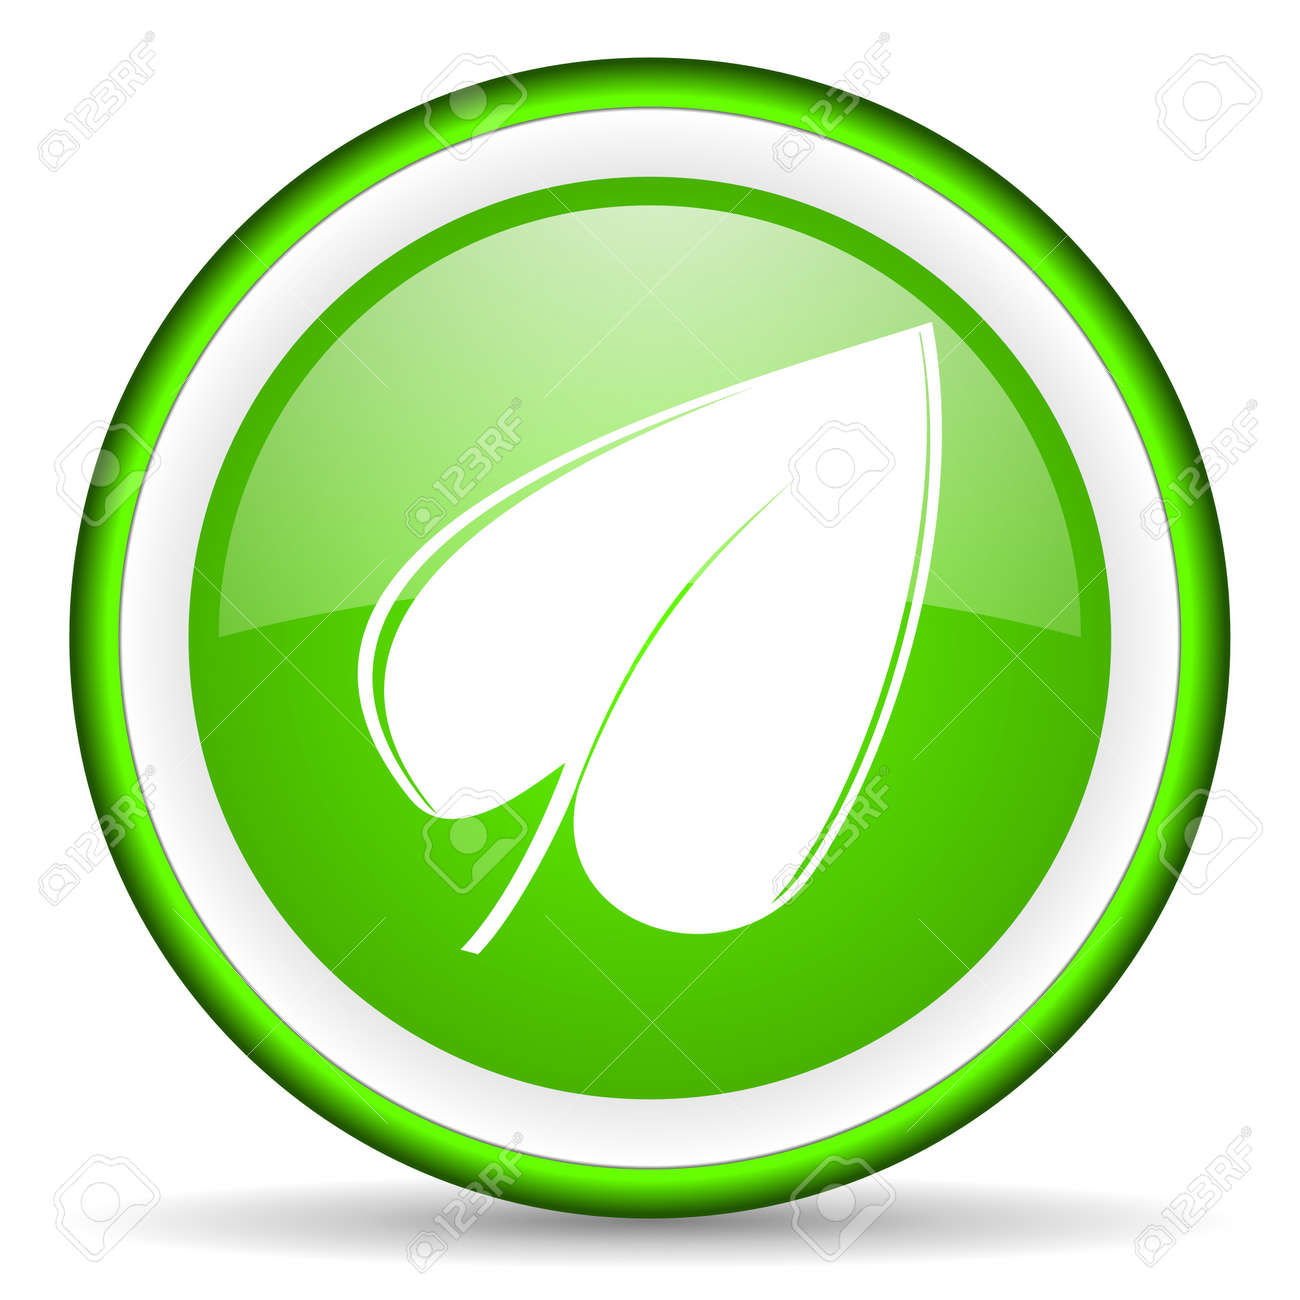 green circle glossy web icon with pictogram on white background Stock Photo - 17319058